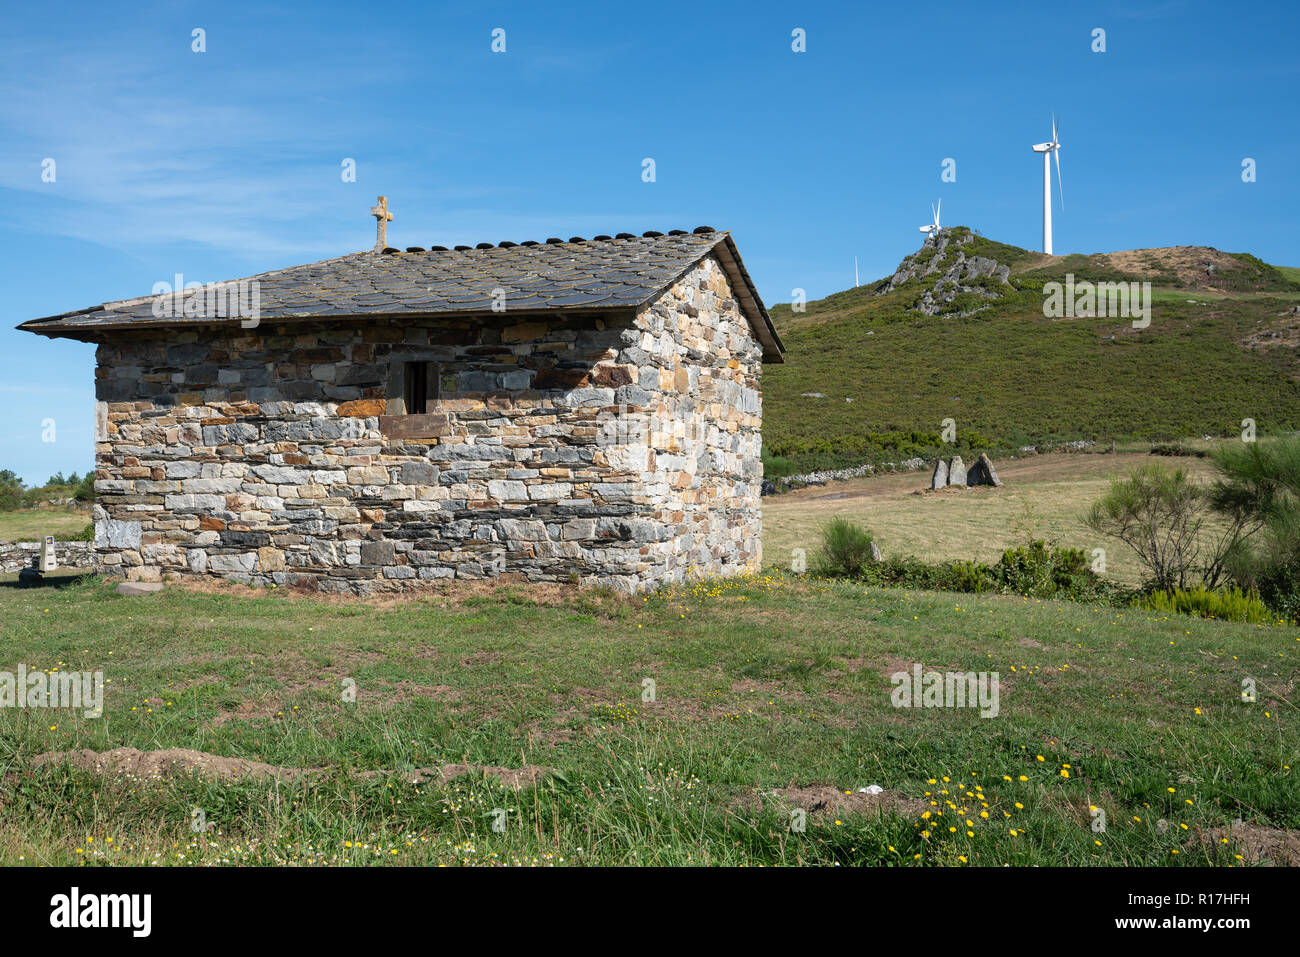 MOUNT MONTOUTO, SPAIN - AUGUST 26, 2018: Old chapel an pilgrim hospital on Mount Montouto, Camino de Santiago trail between Fonsagrada and O Cadavo on - Stock Image